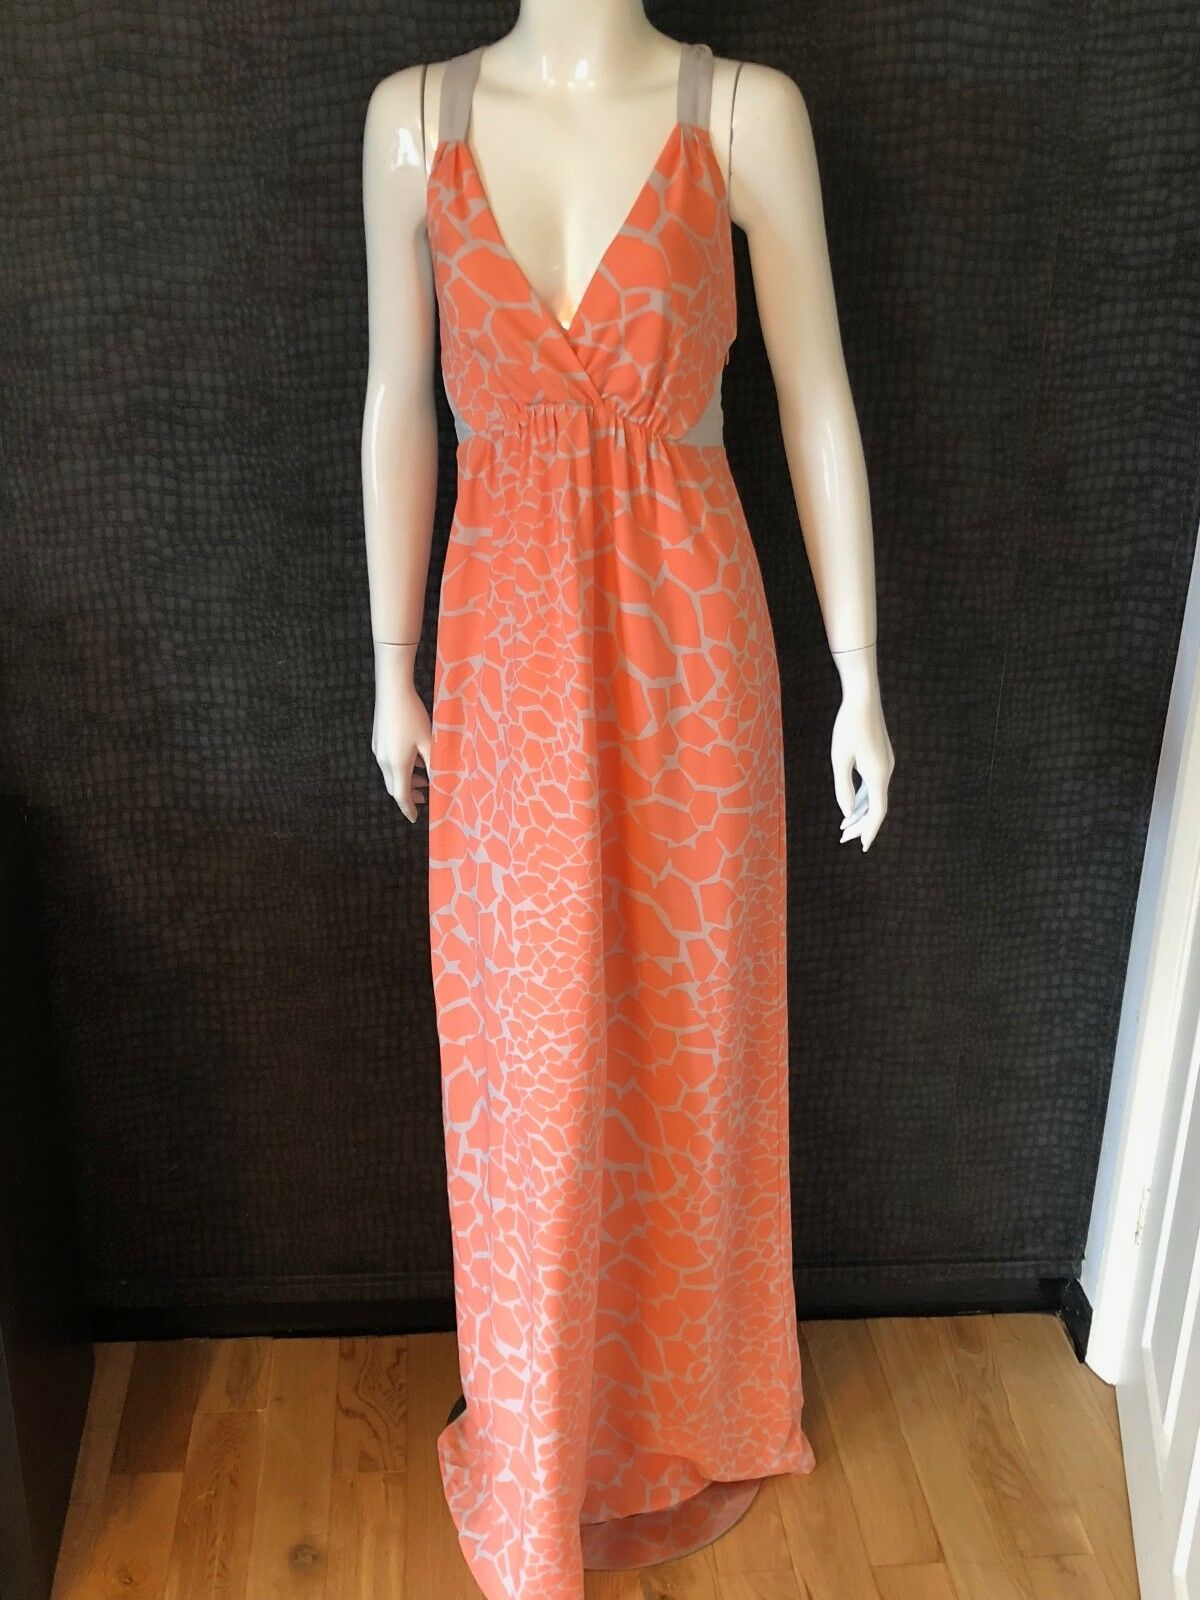 NEW WITHOUT TAGS - ARMANI EXCHANGE orange & NUDE DRESS SIZE US 6 -